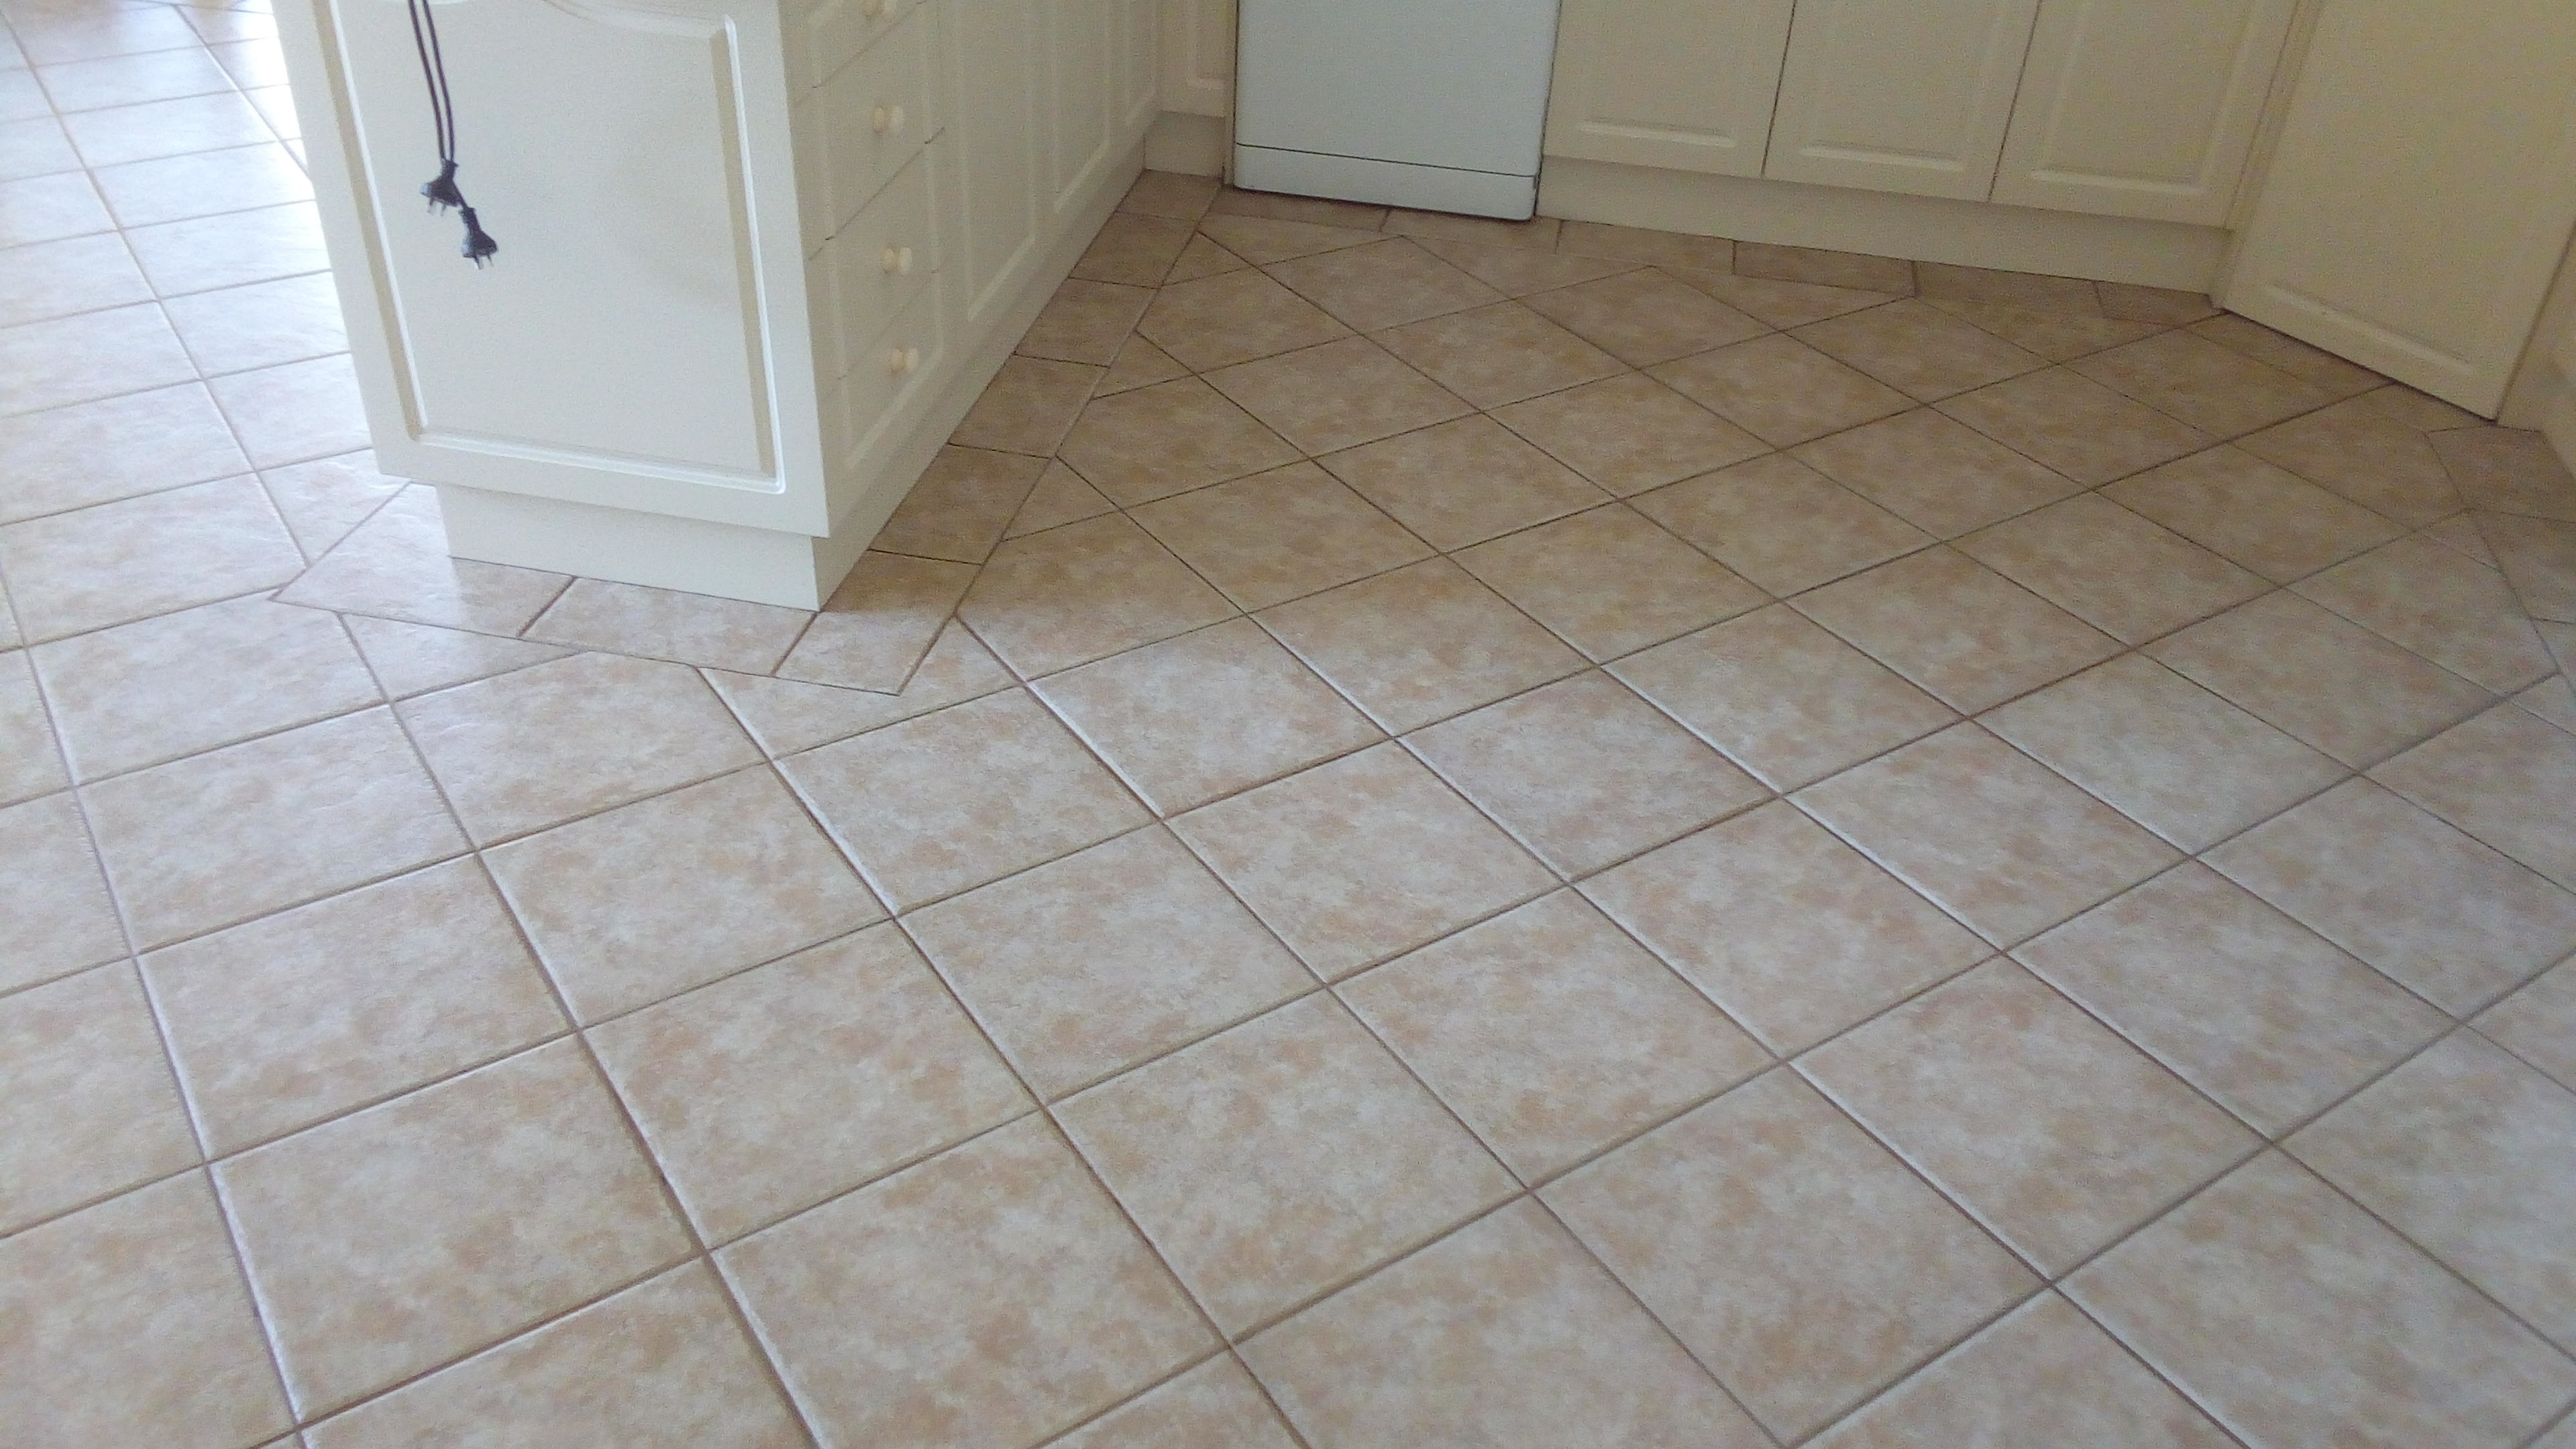 Tile and Grout After Cleaning Riverland.